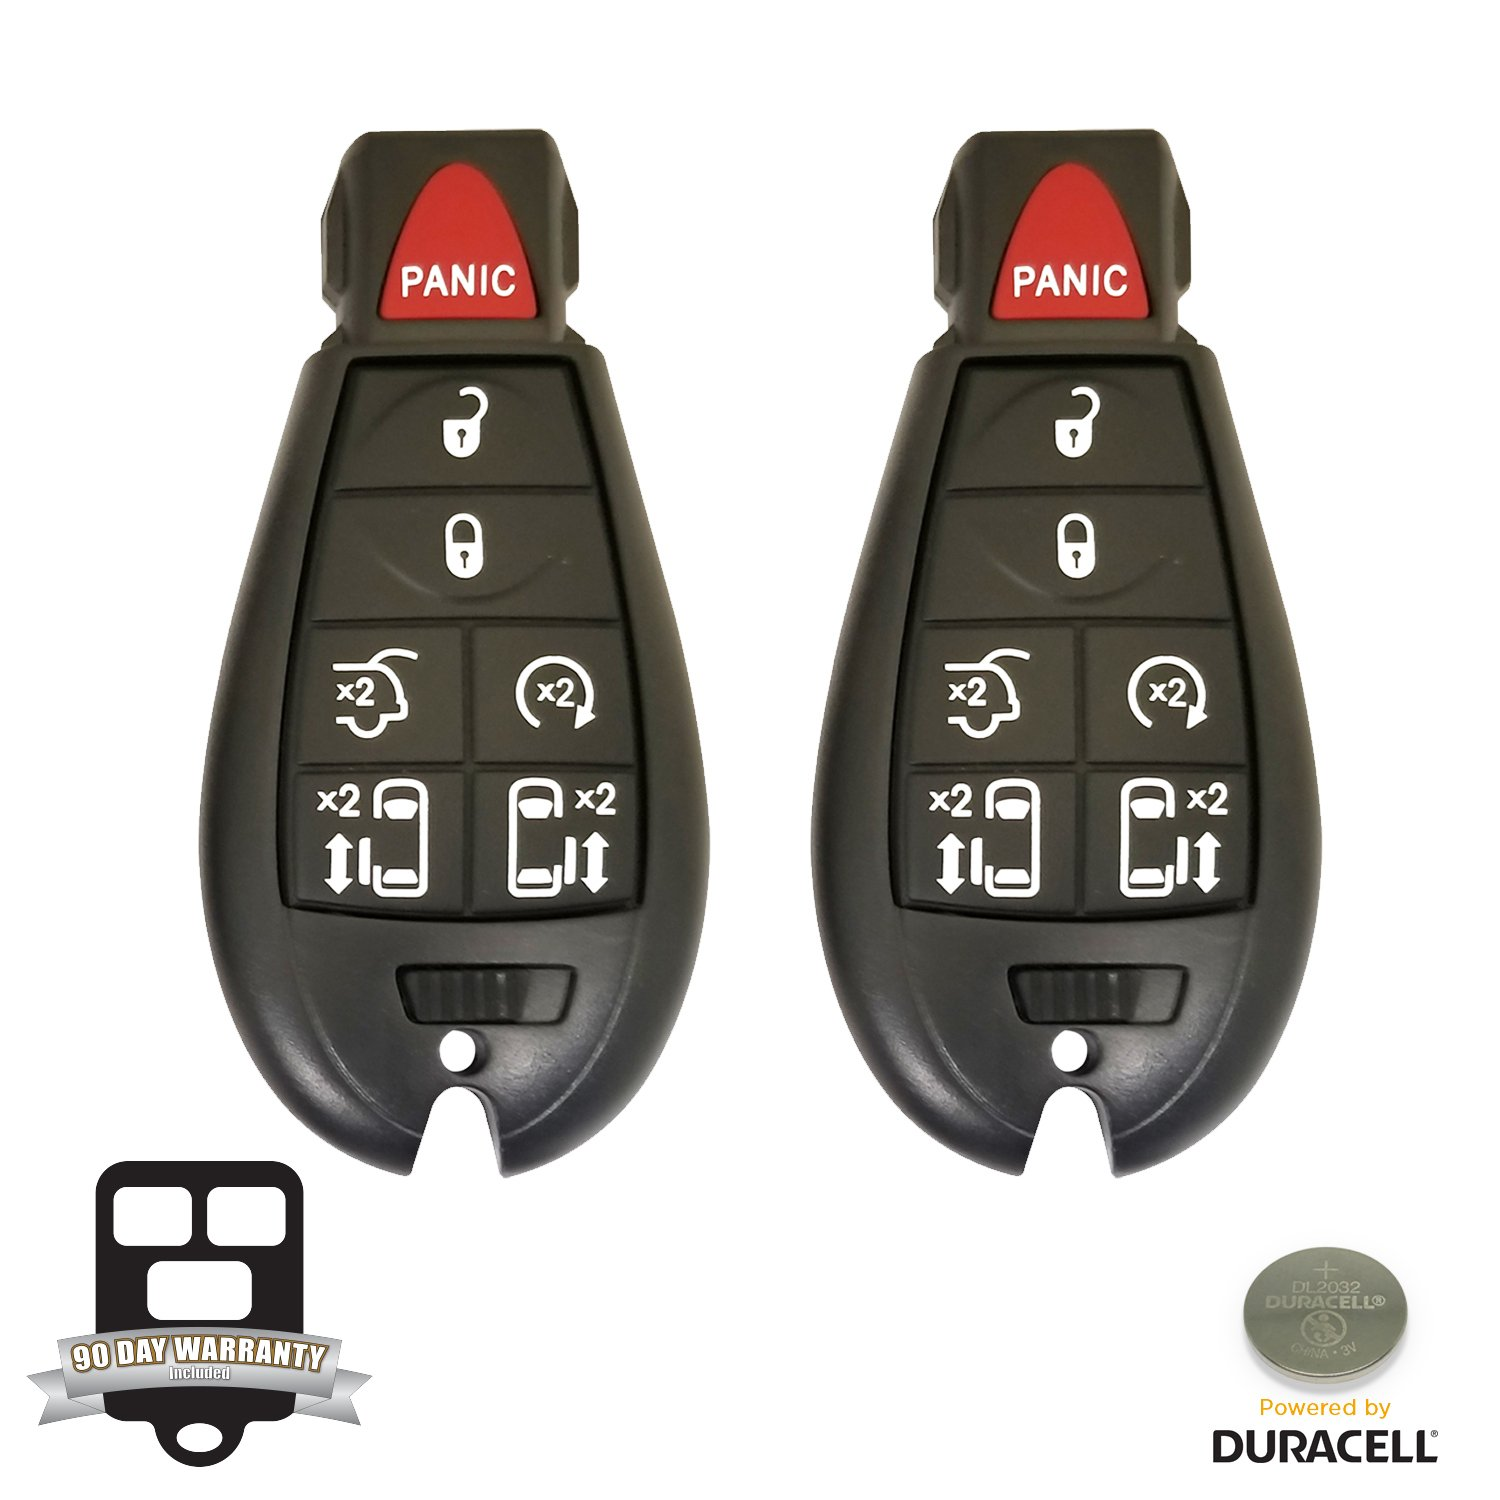 REMOTE STORE New Pair Of 7 Button Replacement For Dodge Grand Caravan Chrysler Town & Country Fobik Keyless Remote FCC: Iyz-C01C